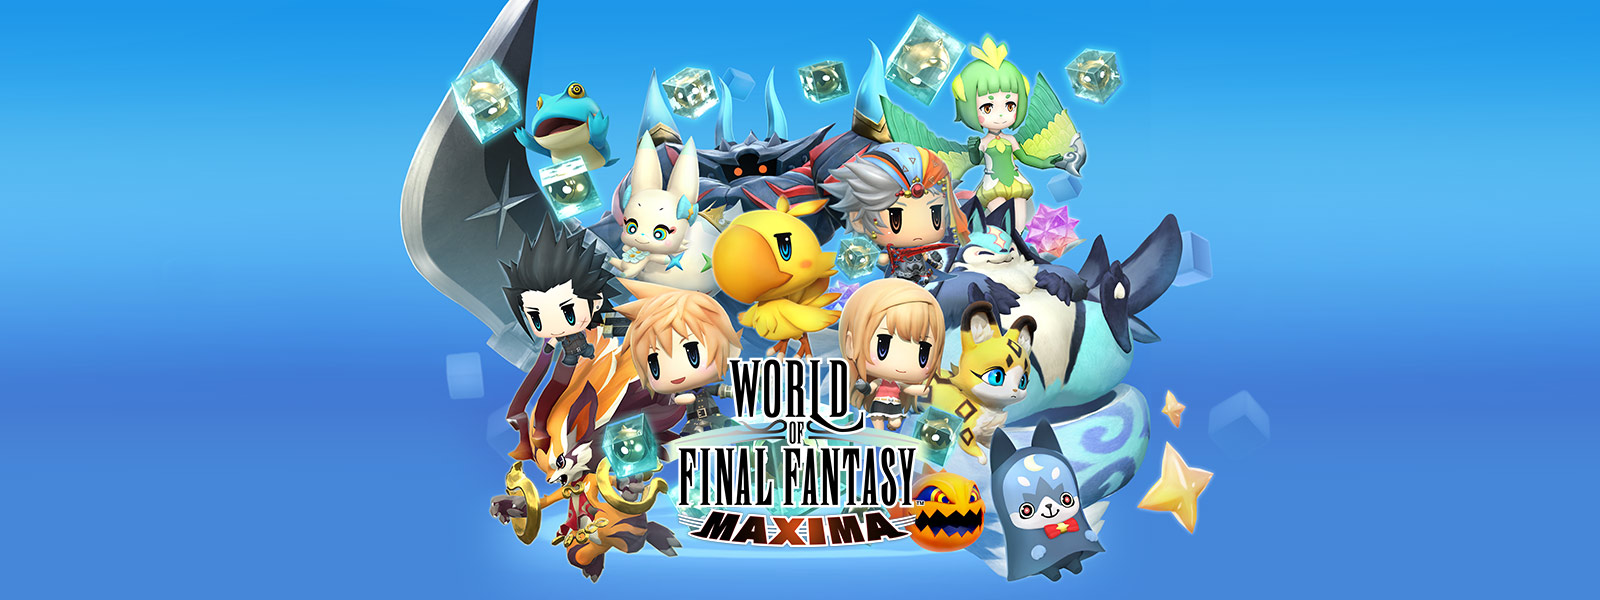 Characters from WORLD OF FINAL FANTASY MAXIMA jumping out from the center of the screen